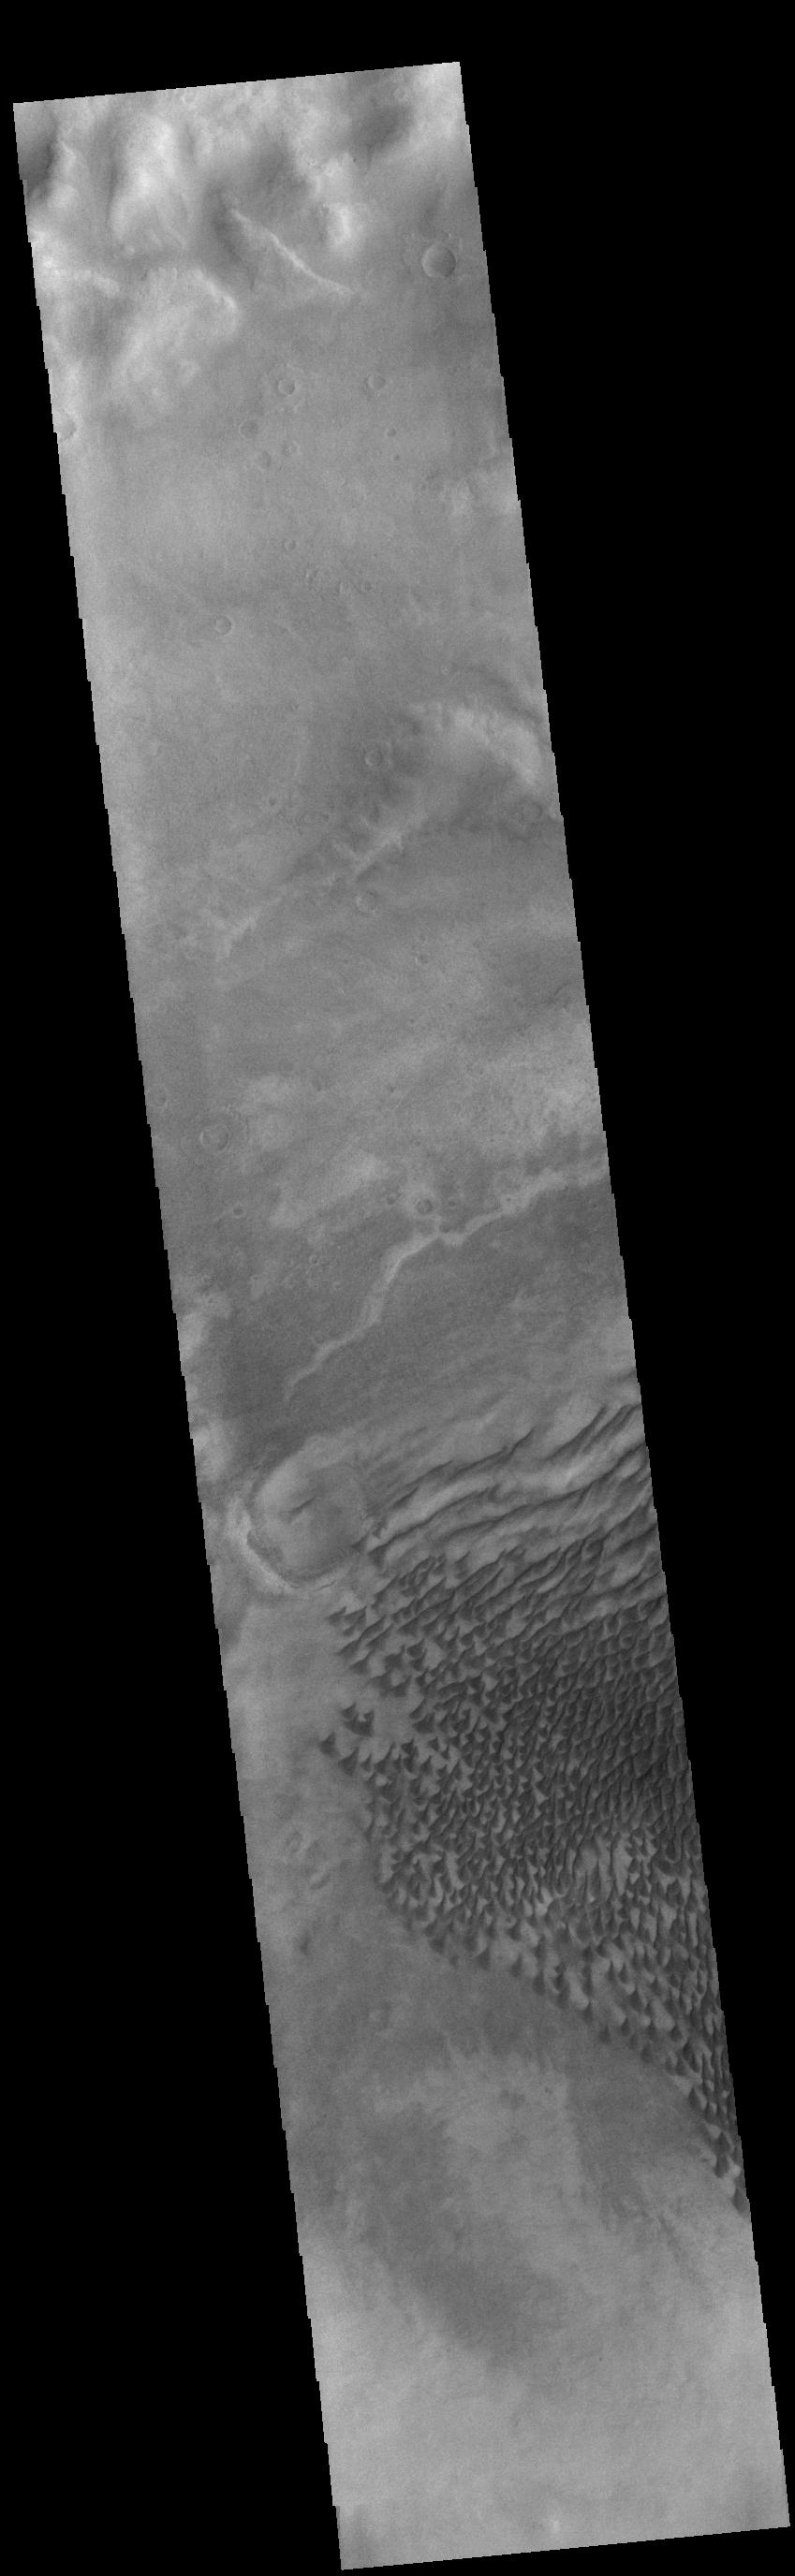 This image from NASAs Mars Odyssey shows part of the floor of Russell Crater.